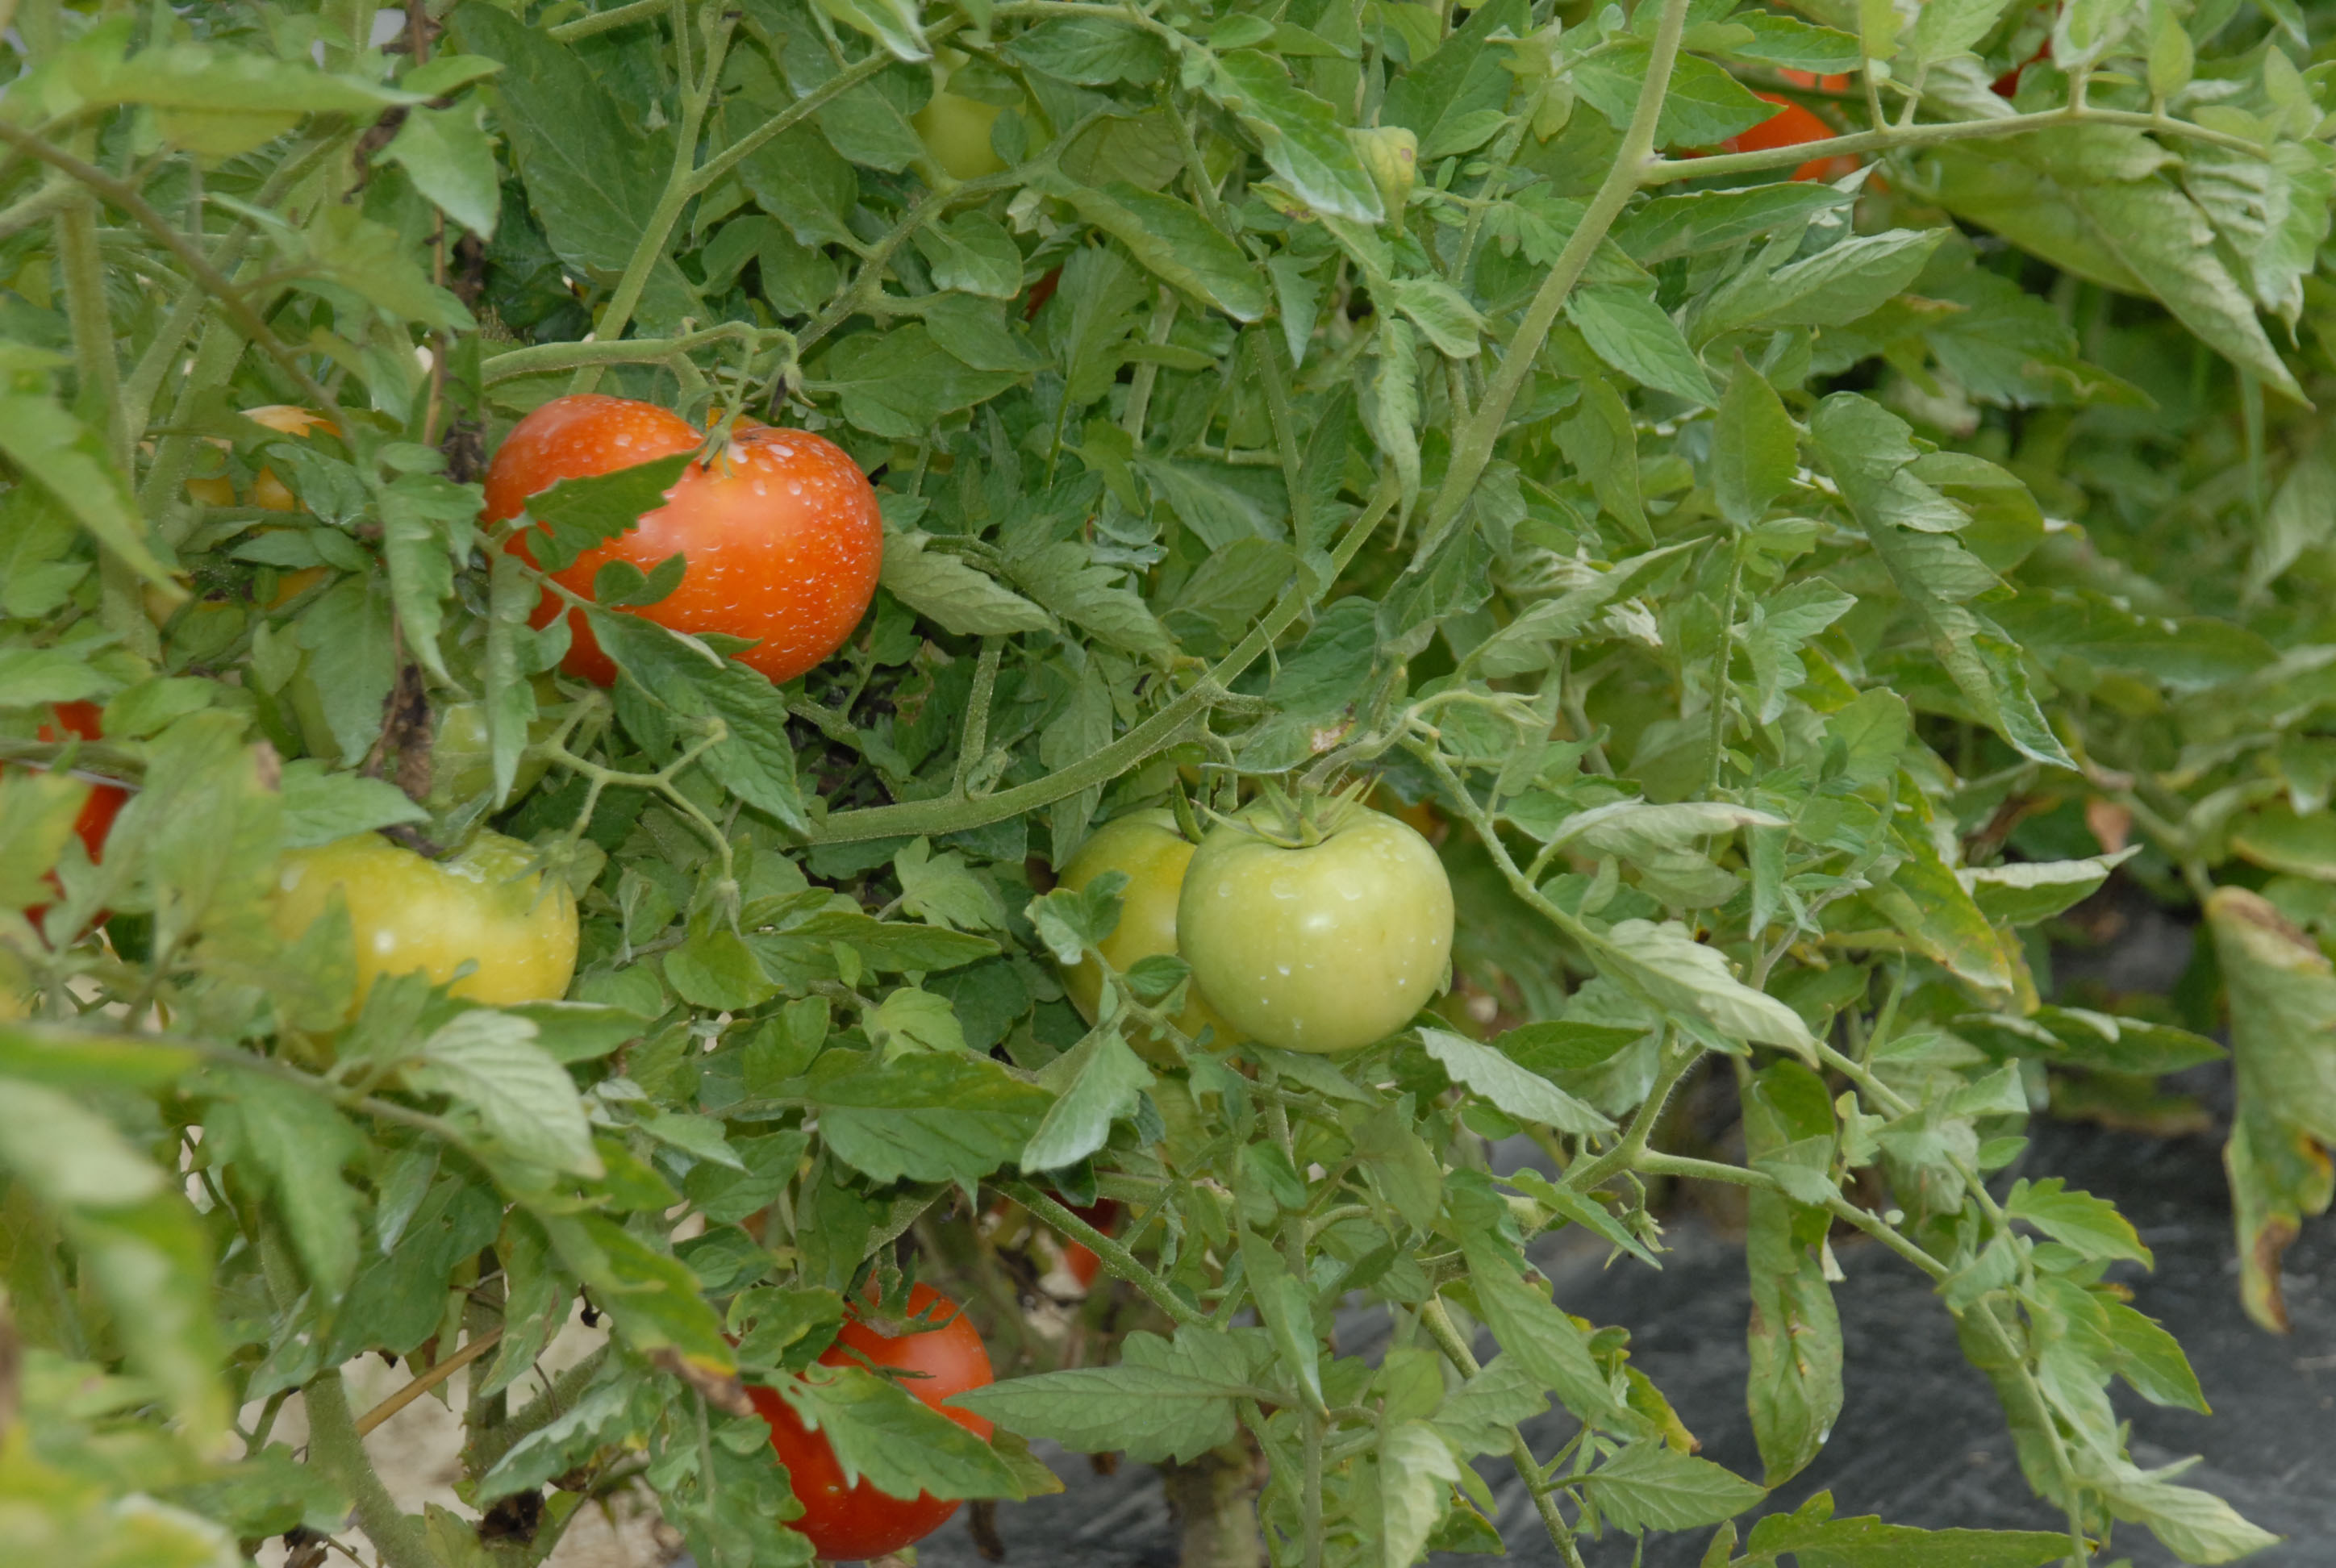 Workshop offers tips for organic farming